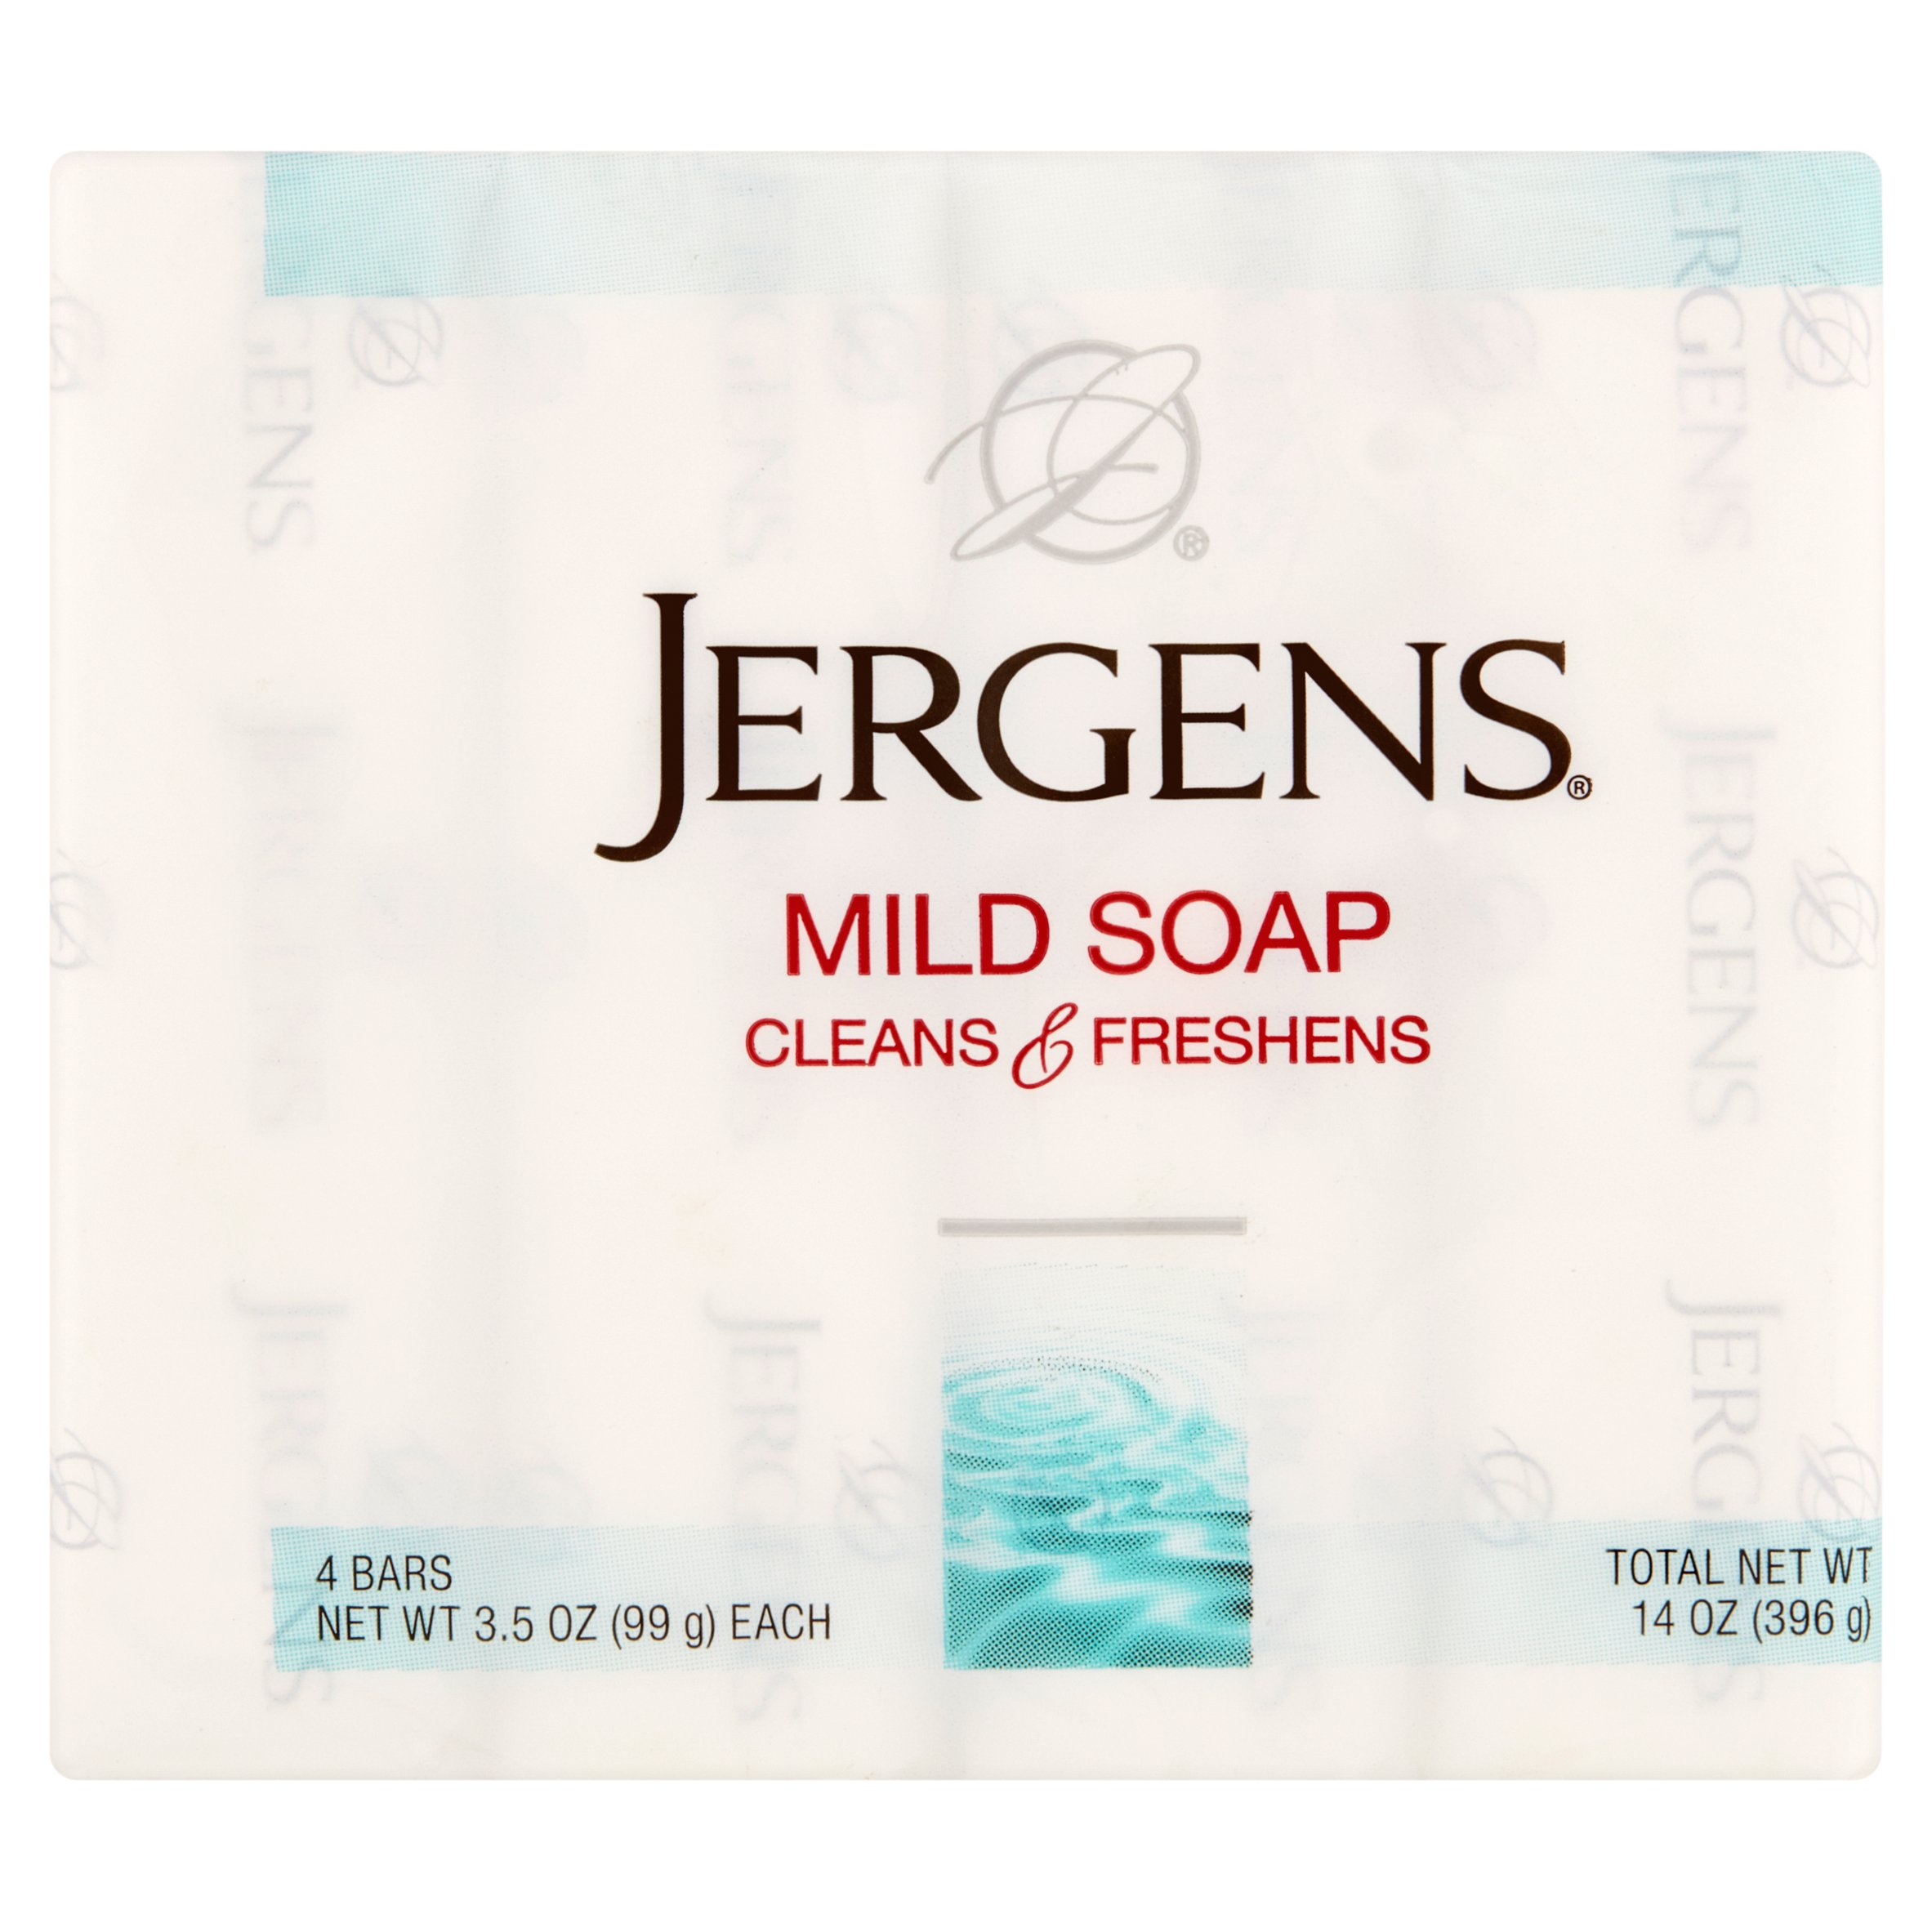 Jergens Cleans & Freshens Mild Soap Bars, 4 pack, 3.5 oz